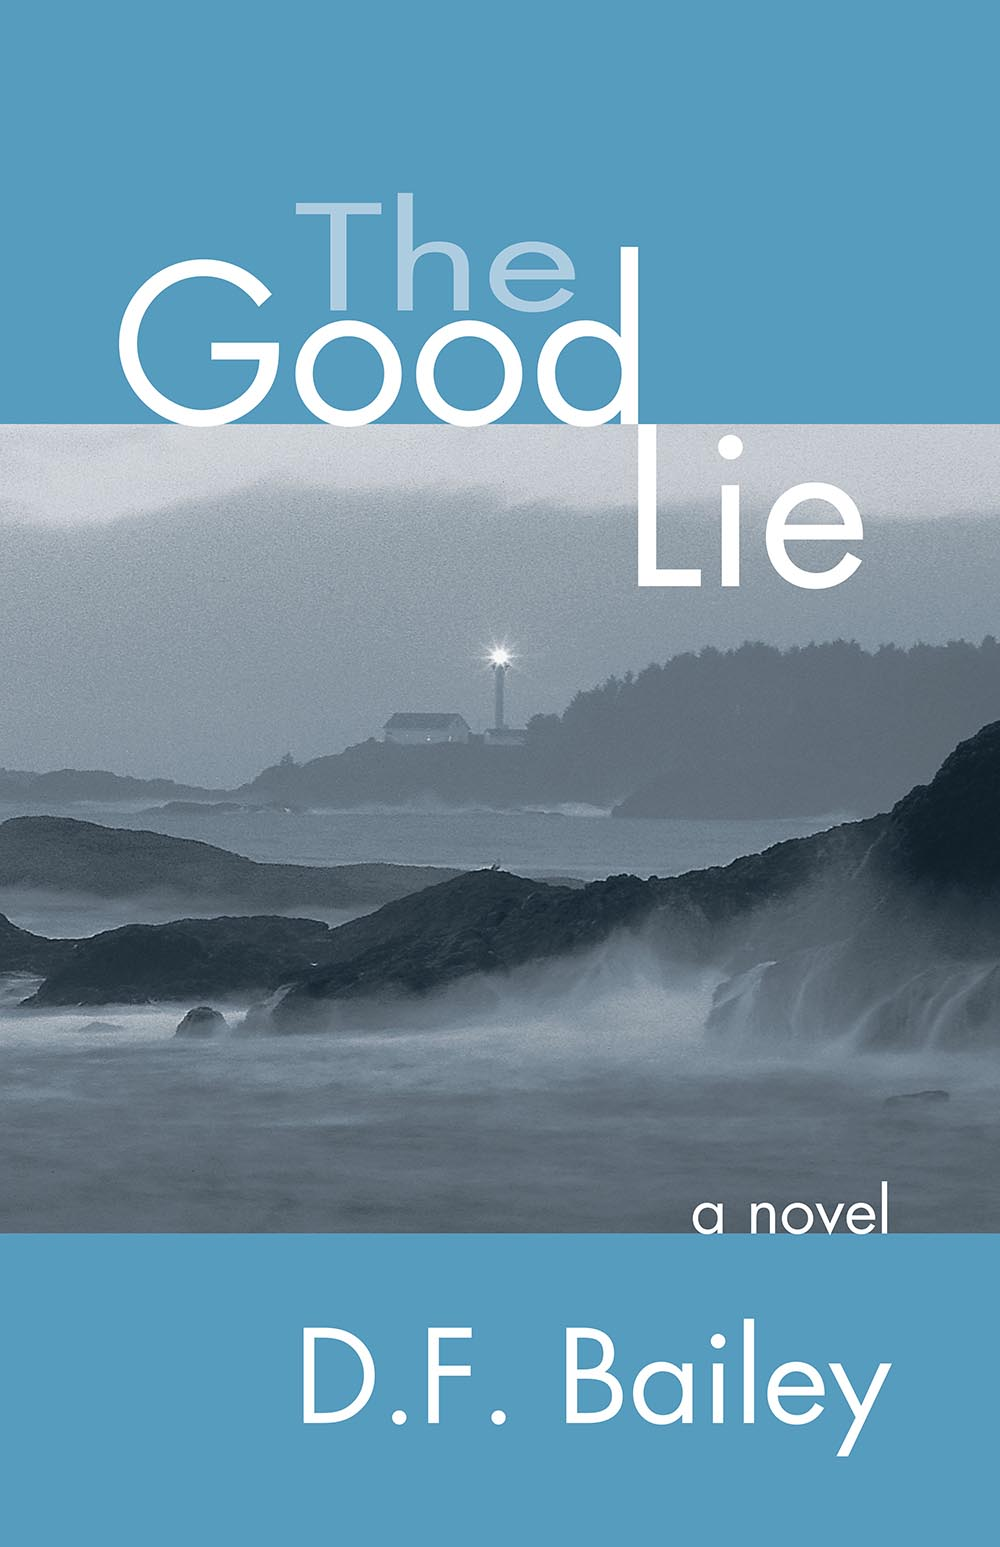 The Good Lie by D. F. Bailey